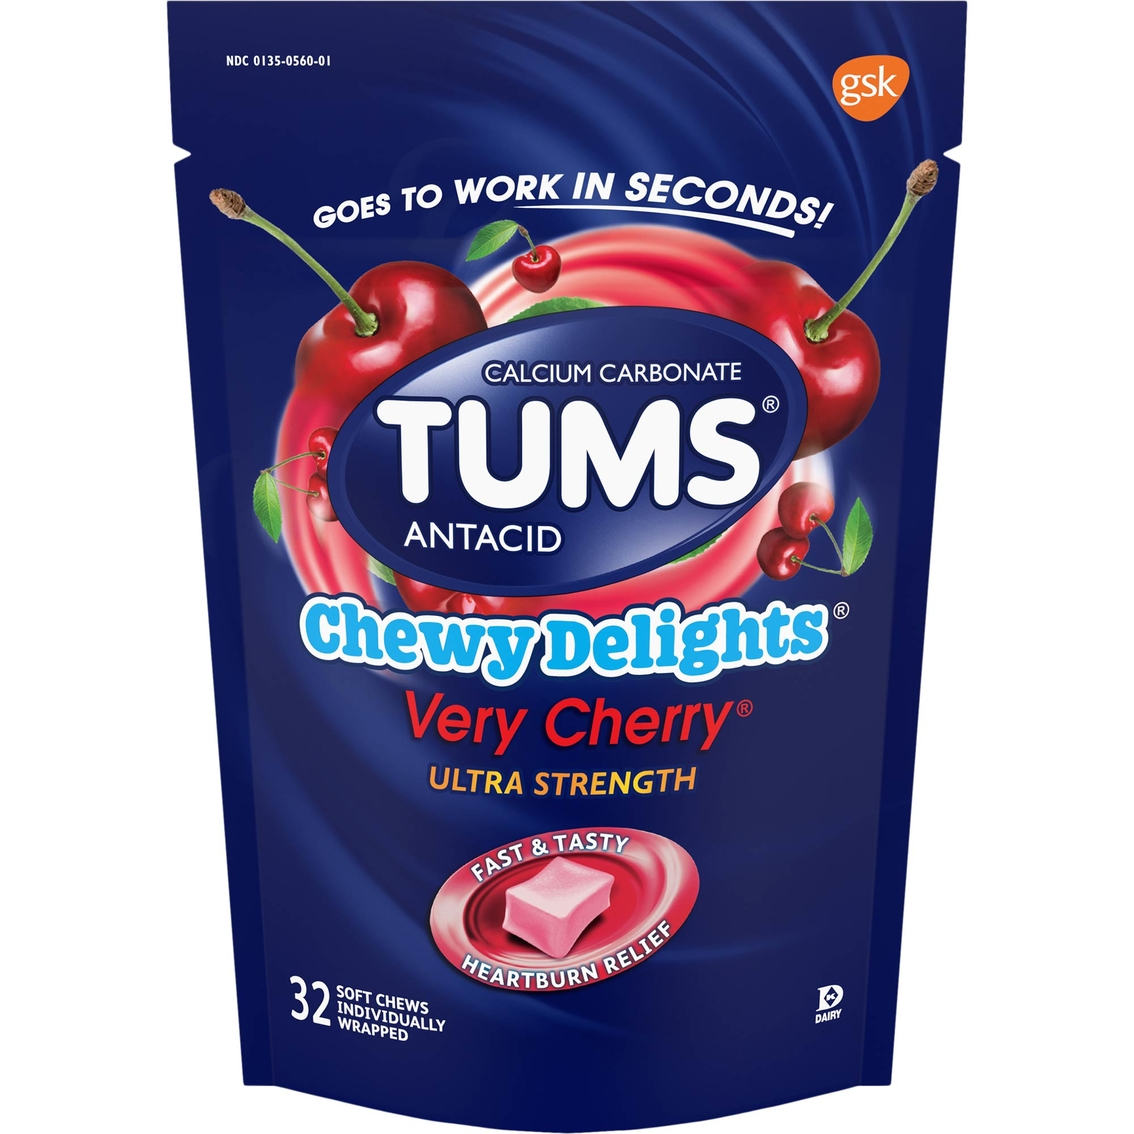 tums chewy delights soft chews very cherry, 32 ct.   digestive